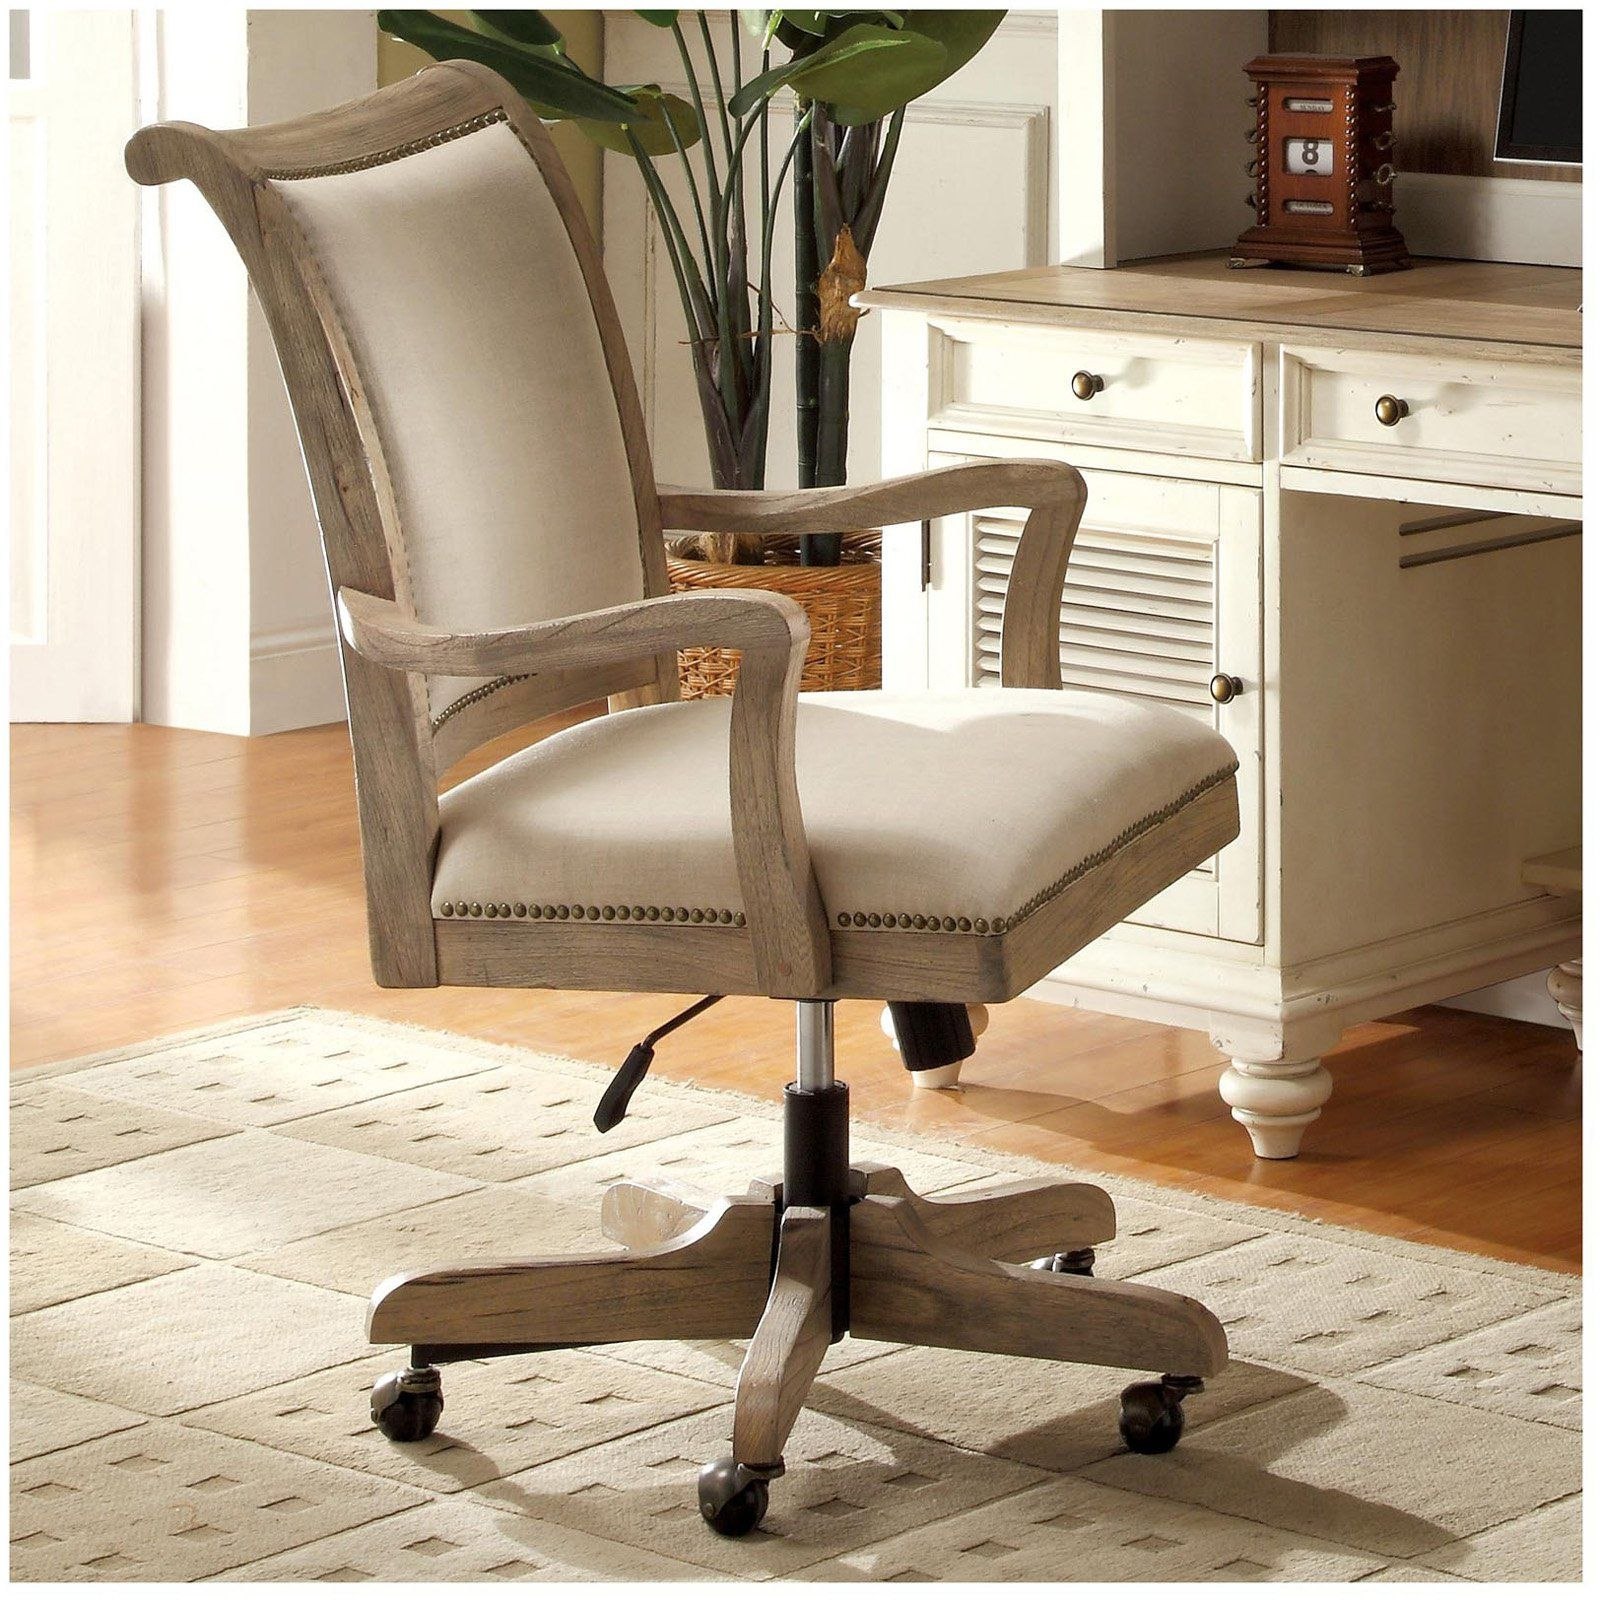 Riverside Coventry Desk Chair | from hayneedle.com ...